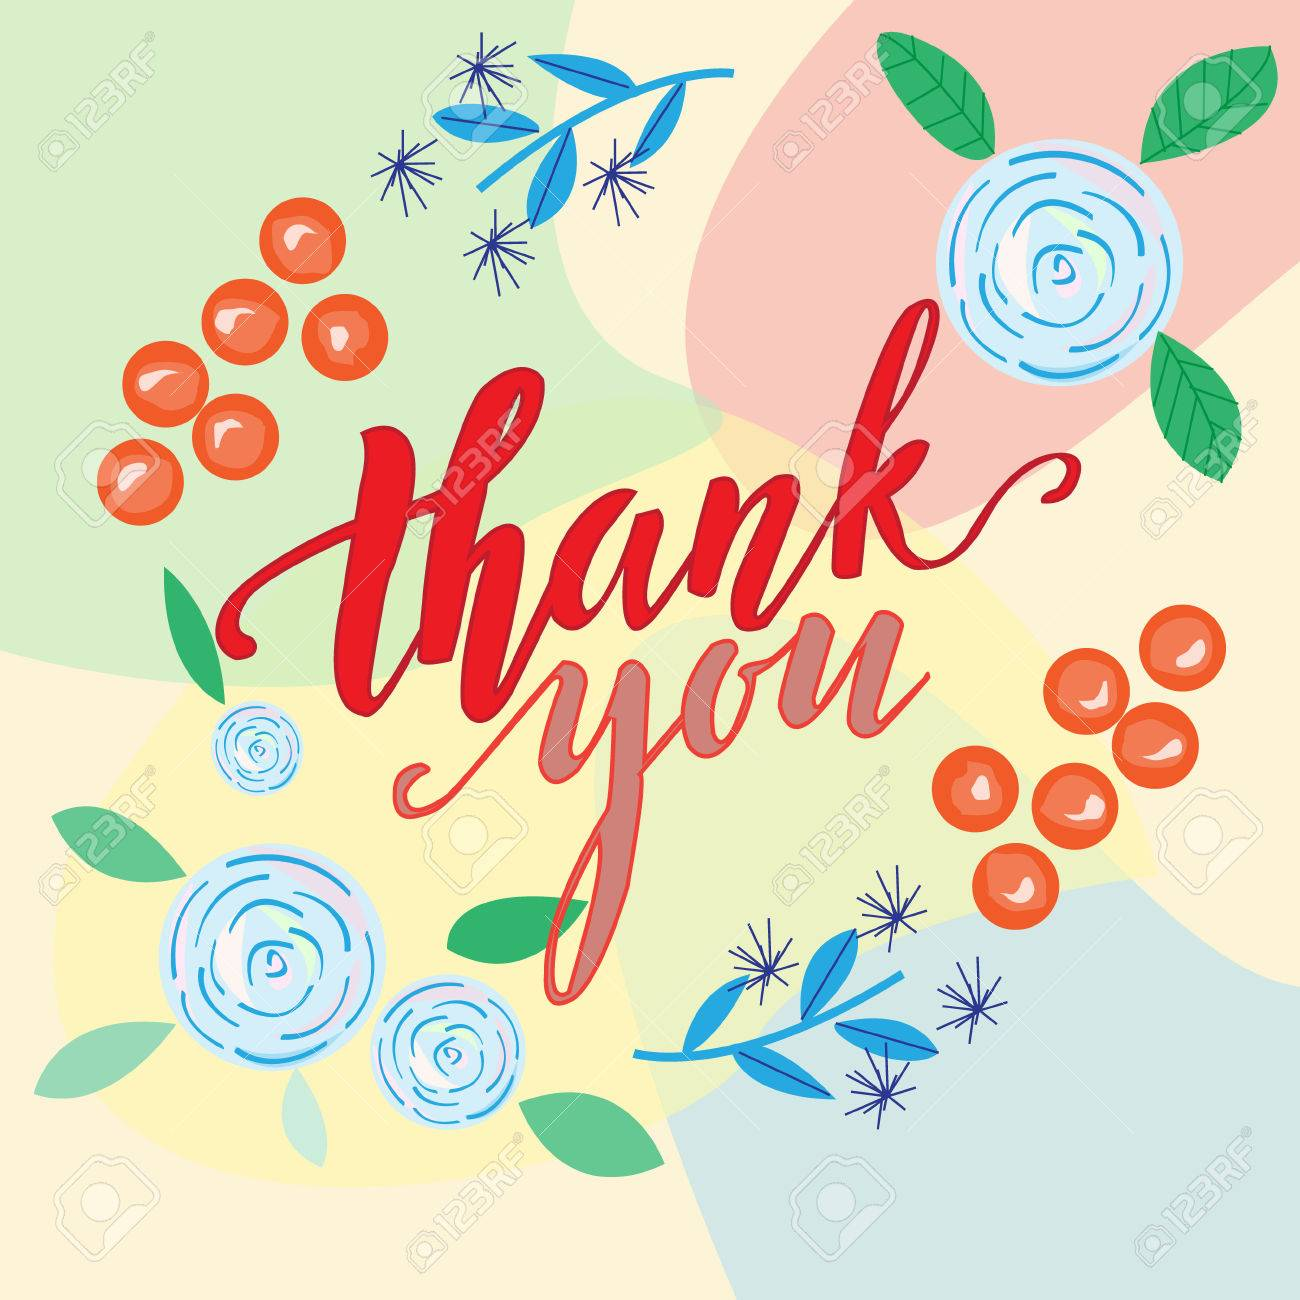 Thank You Vector Greeting Card Or Postcardhand Inscription